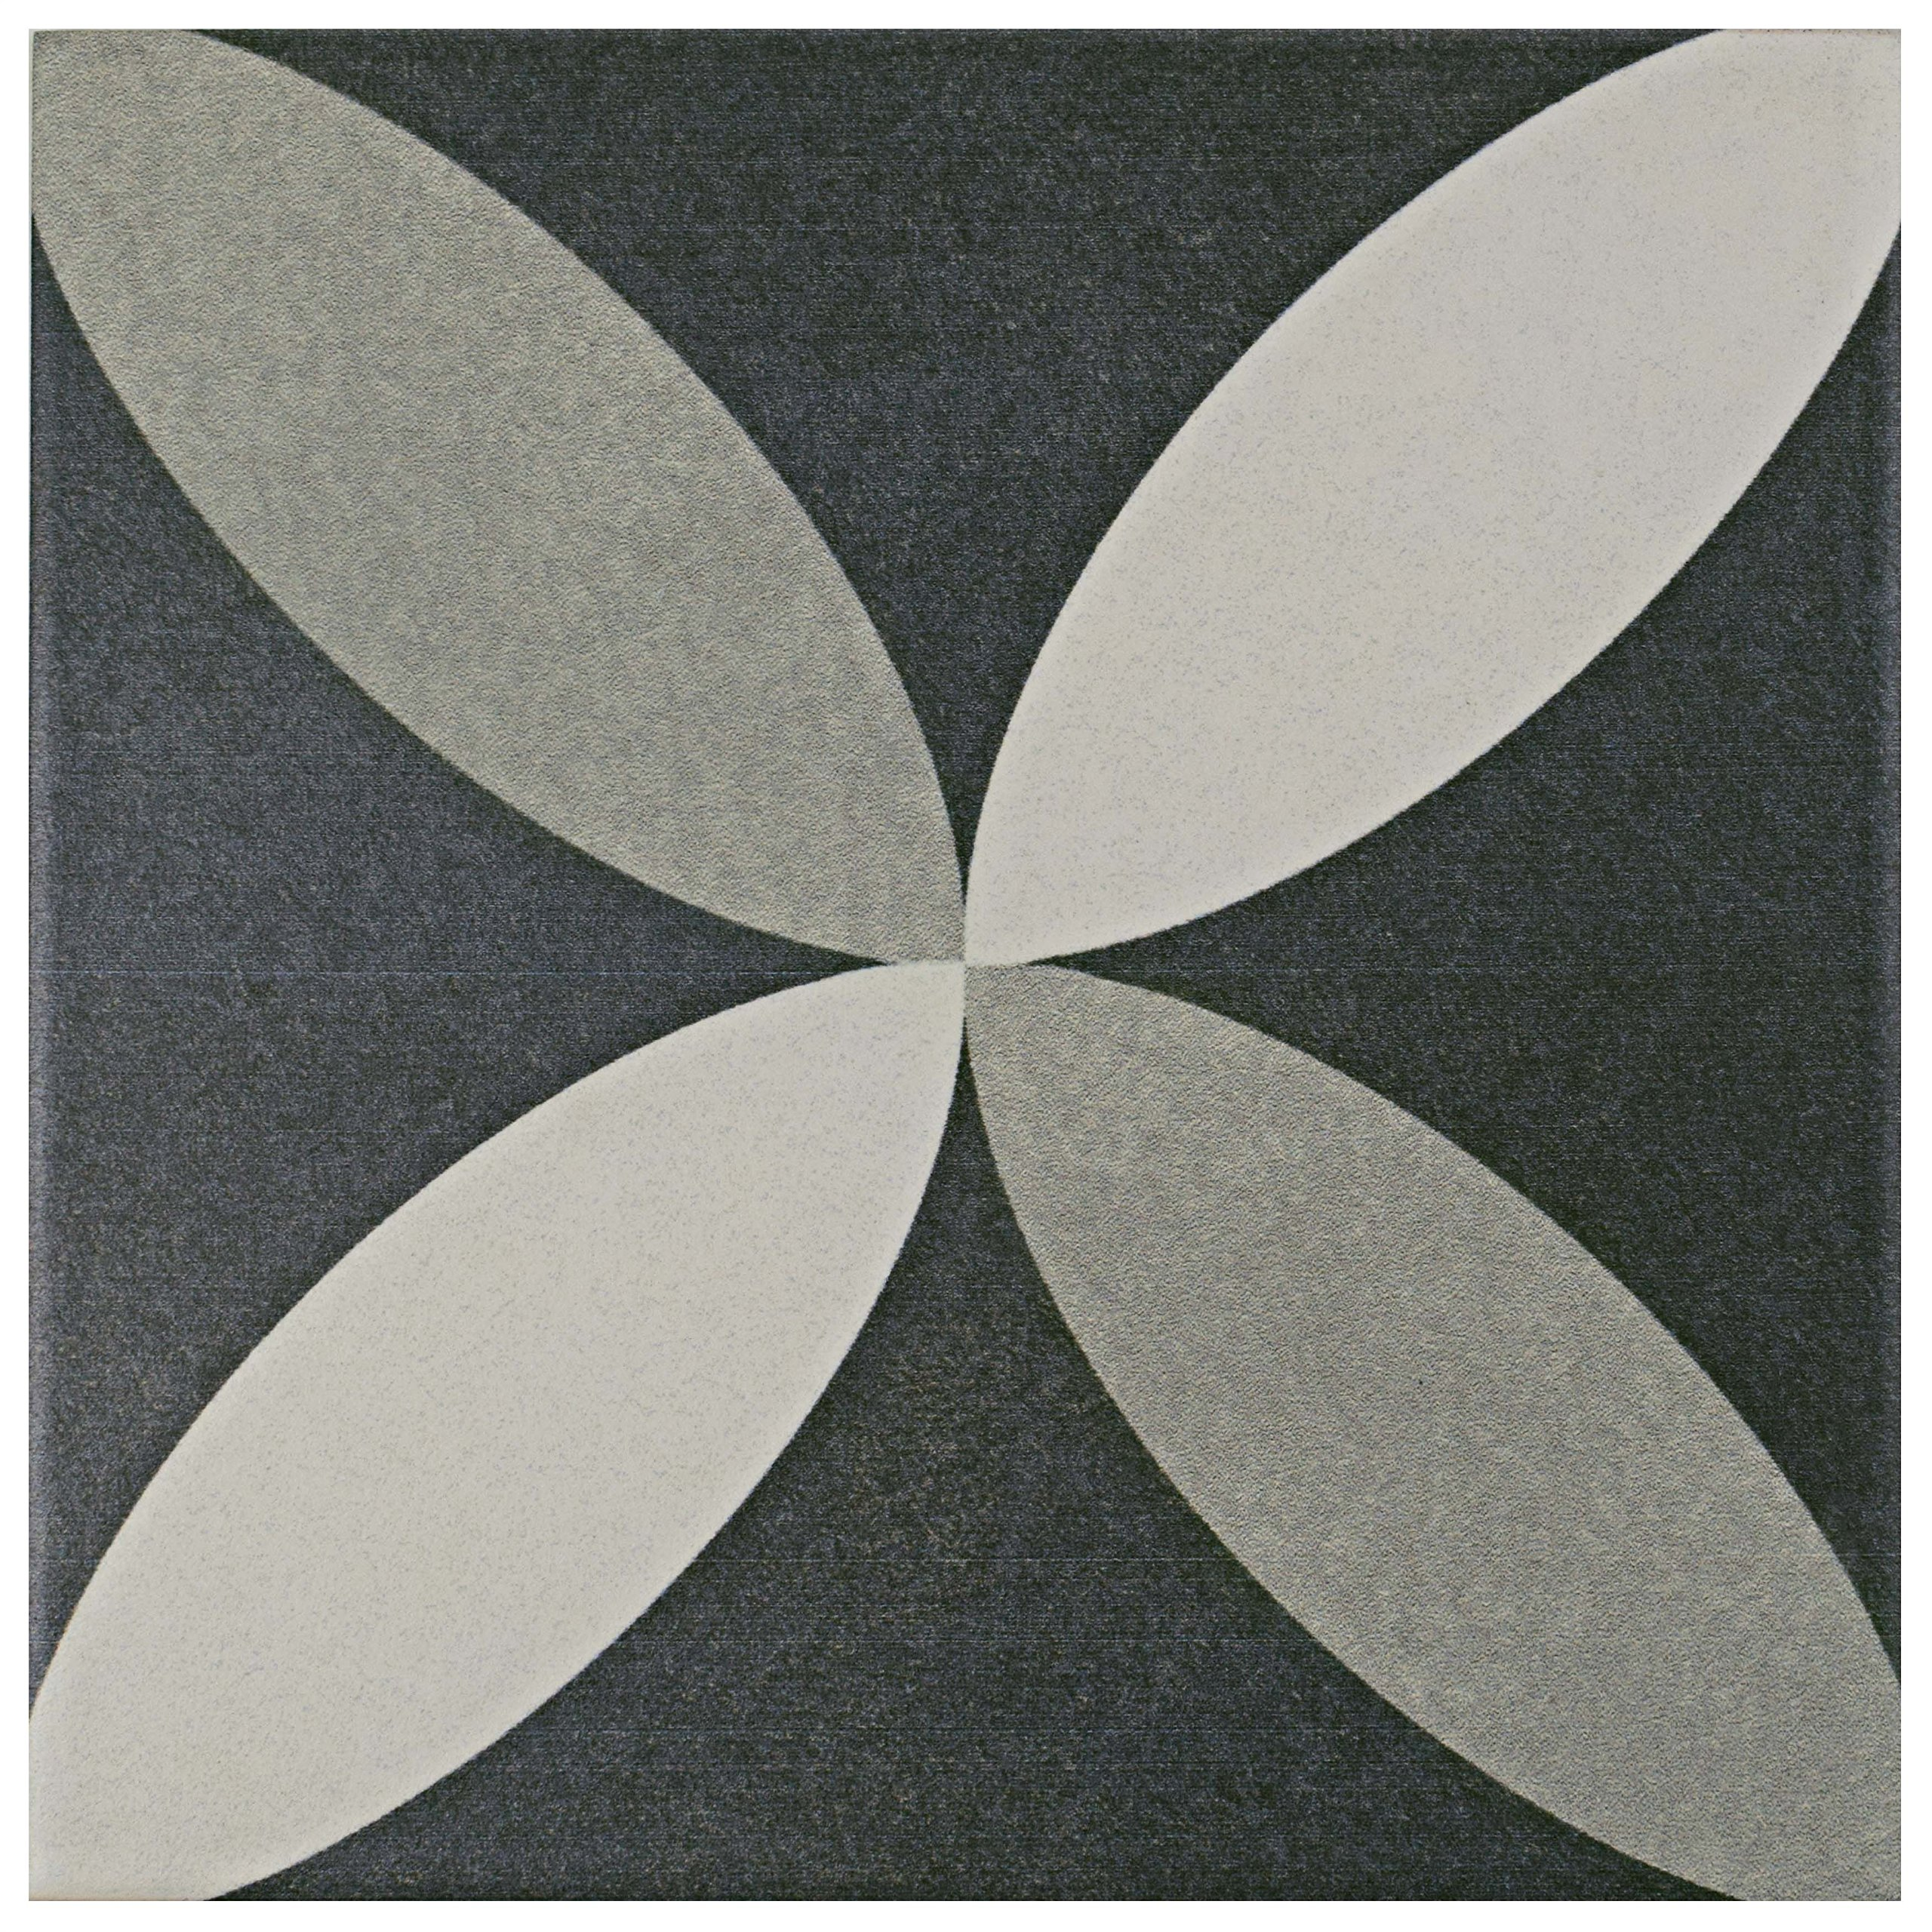 SomerTile FRC8TWEP Fifties Ceramic Floor and Wall Tile, 7.75'' x 7.75'', White/Grey